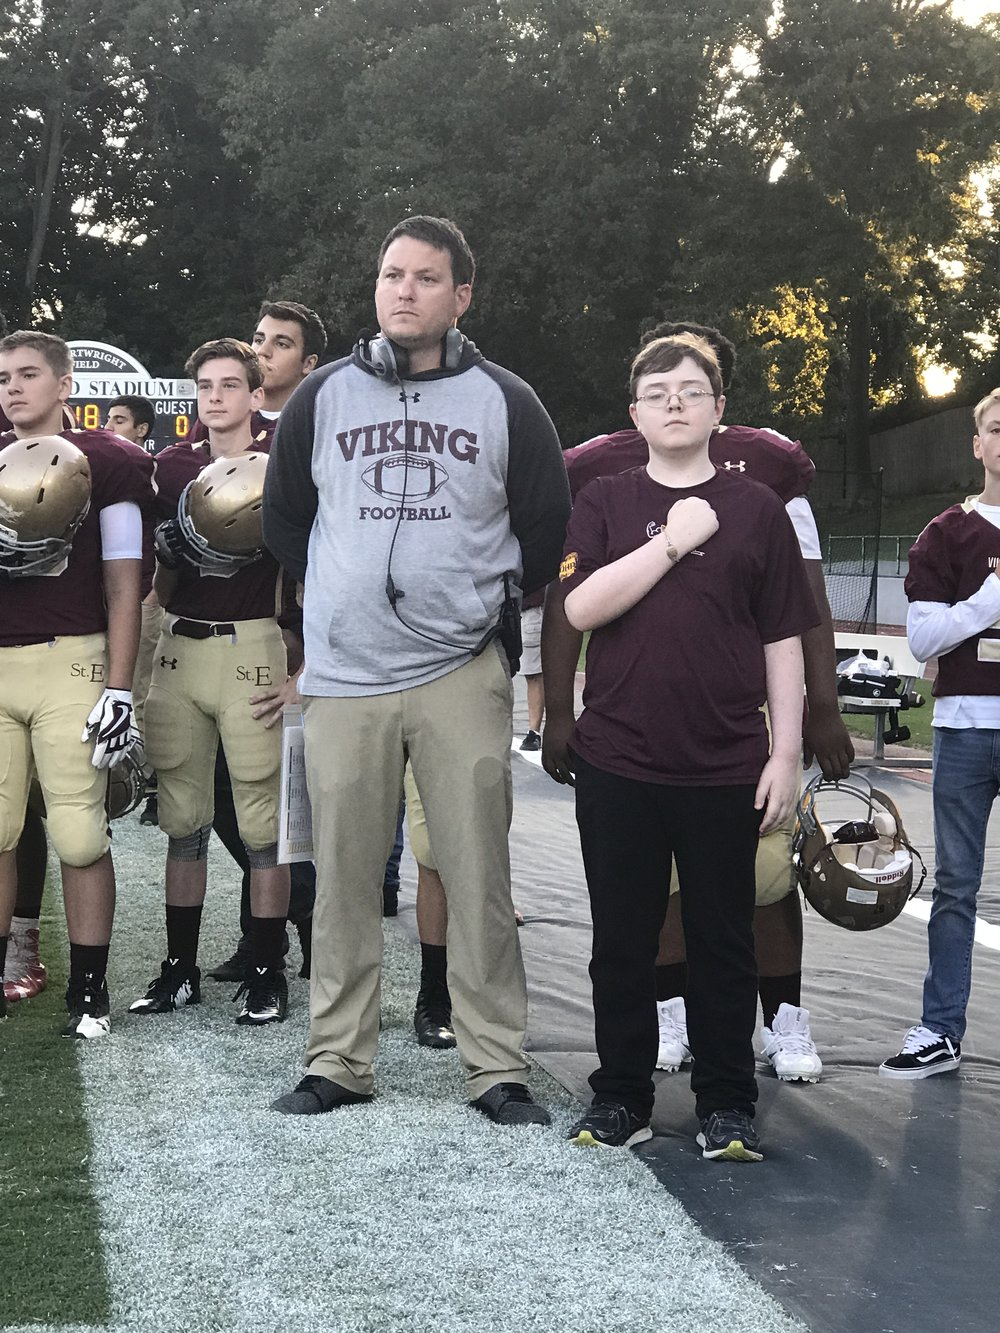 Head Football Coach, Joe Wright, and Muscle Champion, Max French, stand for the National Anthem!